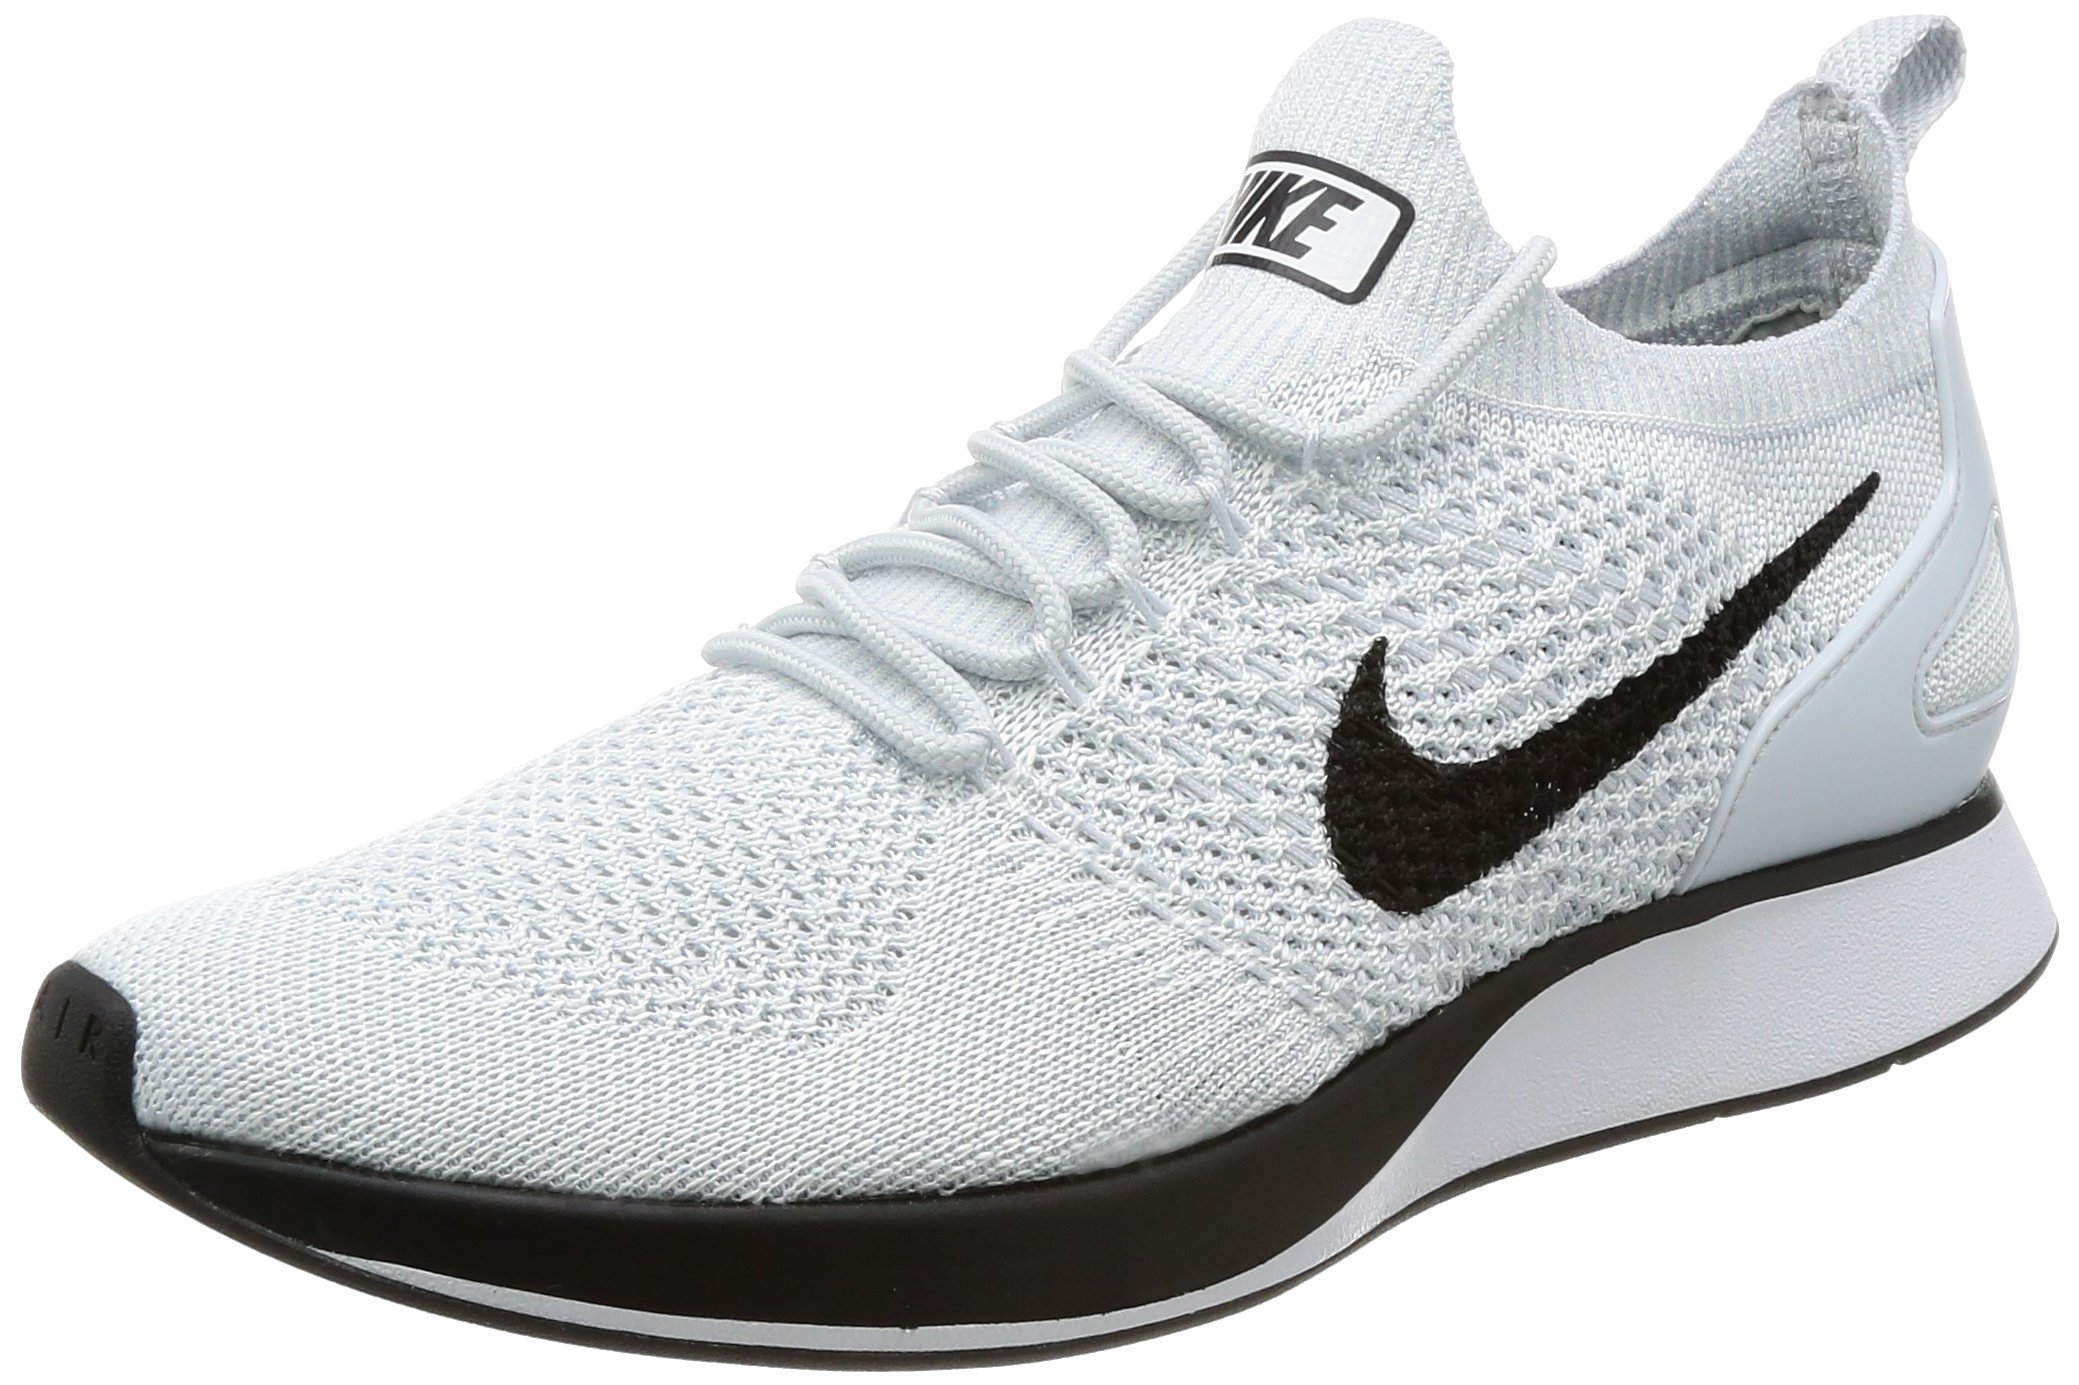 bfcc476caccf Galleon - Nike Men Air Zoom Mariah Flyknit Racer Pure Platinum White Size  10.5 US